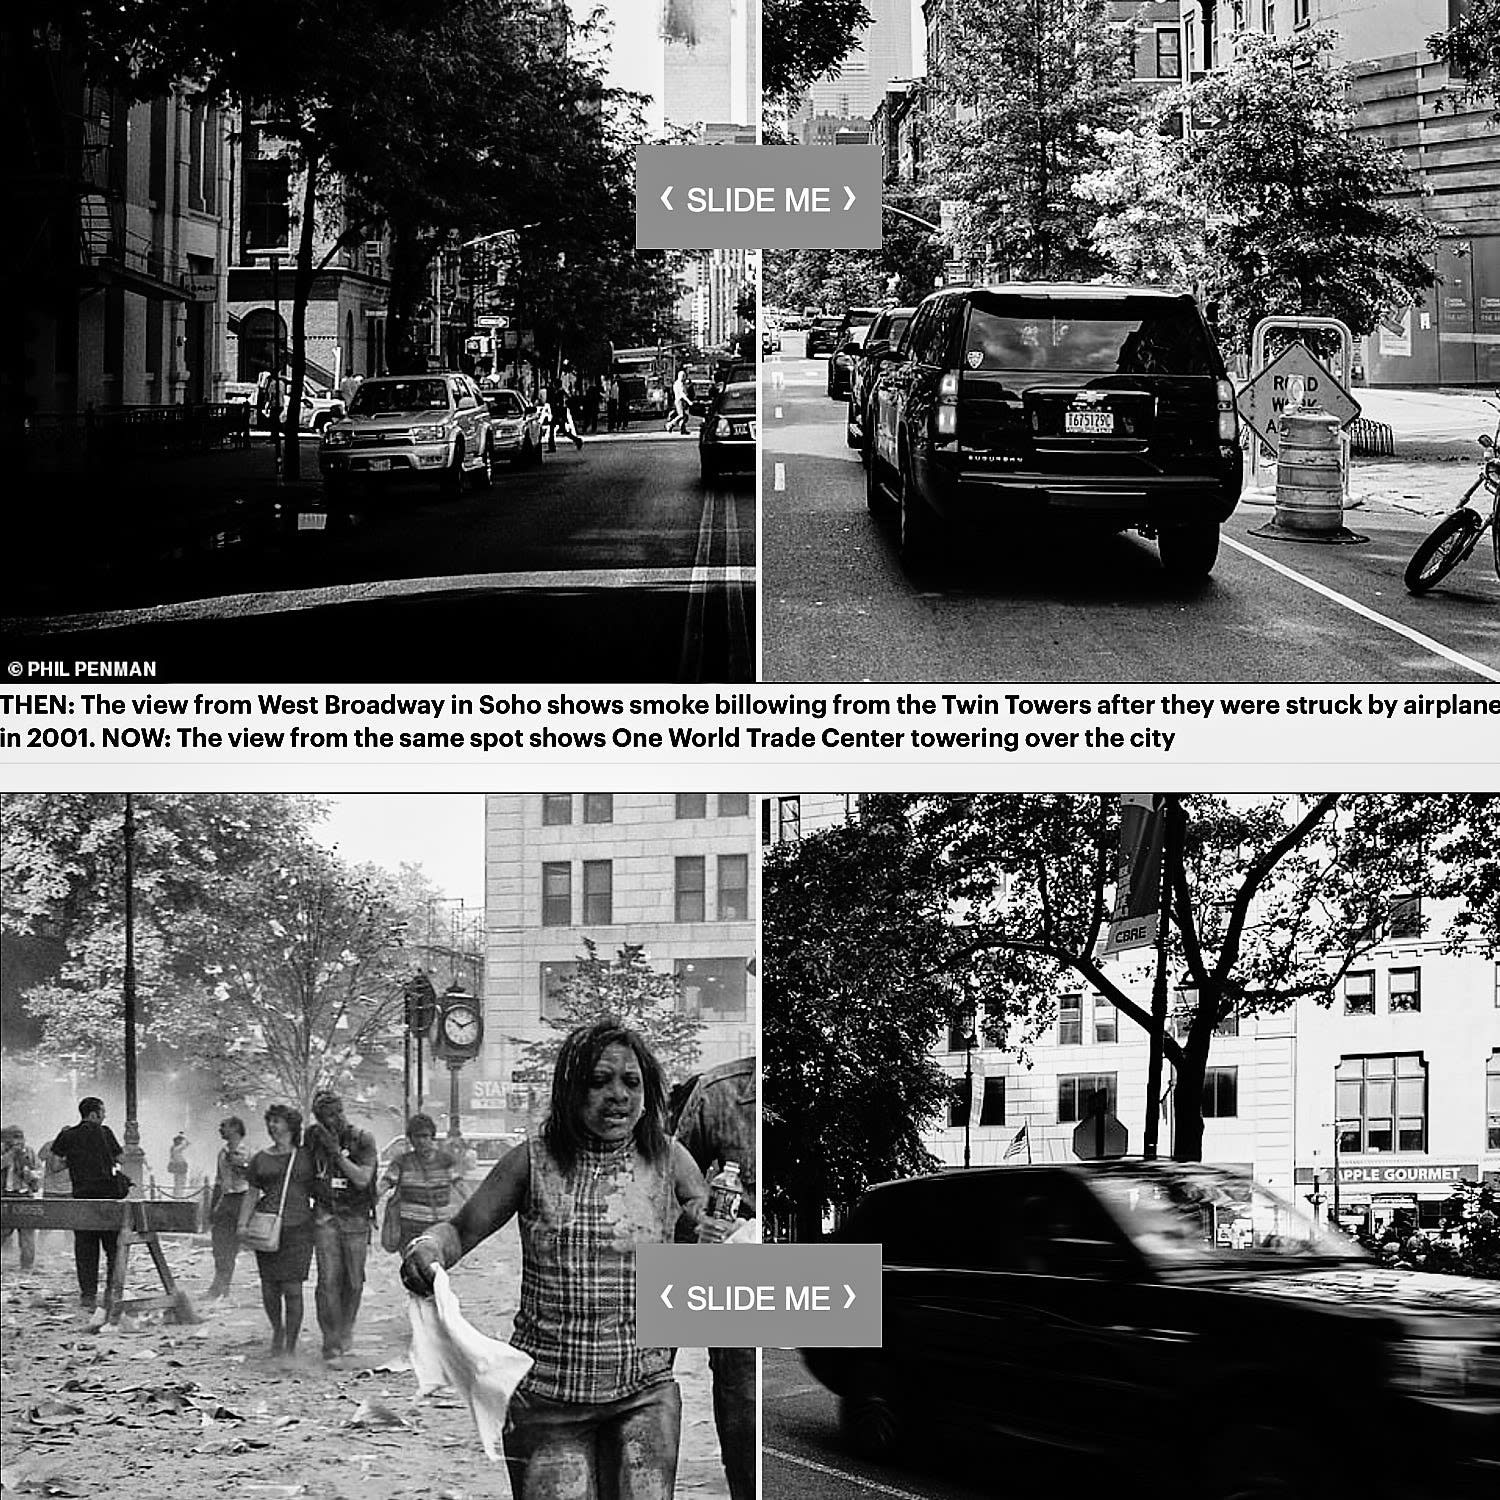 DAILY MAIL : Photographer who captured devastating images of 9/11 calls on Americans to 'bring back togetherness' like t